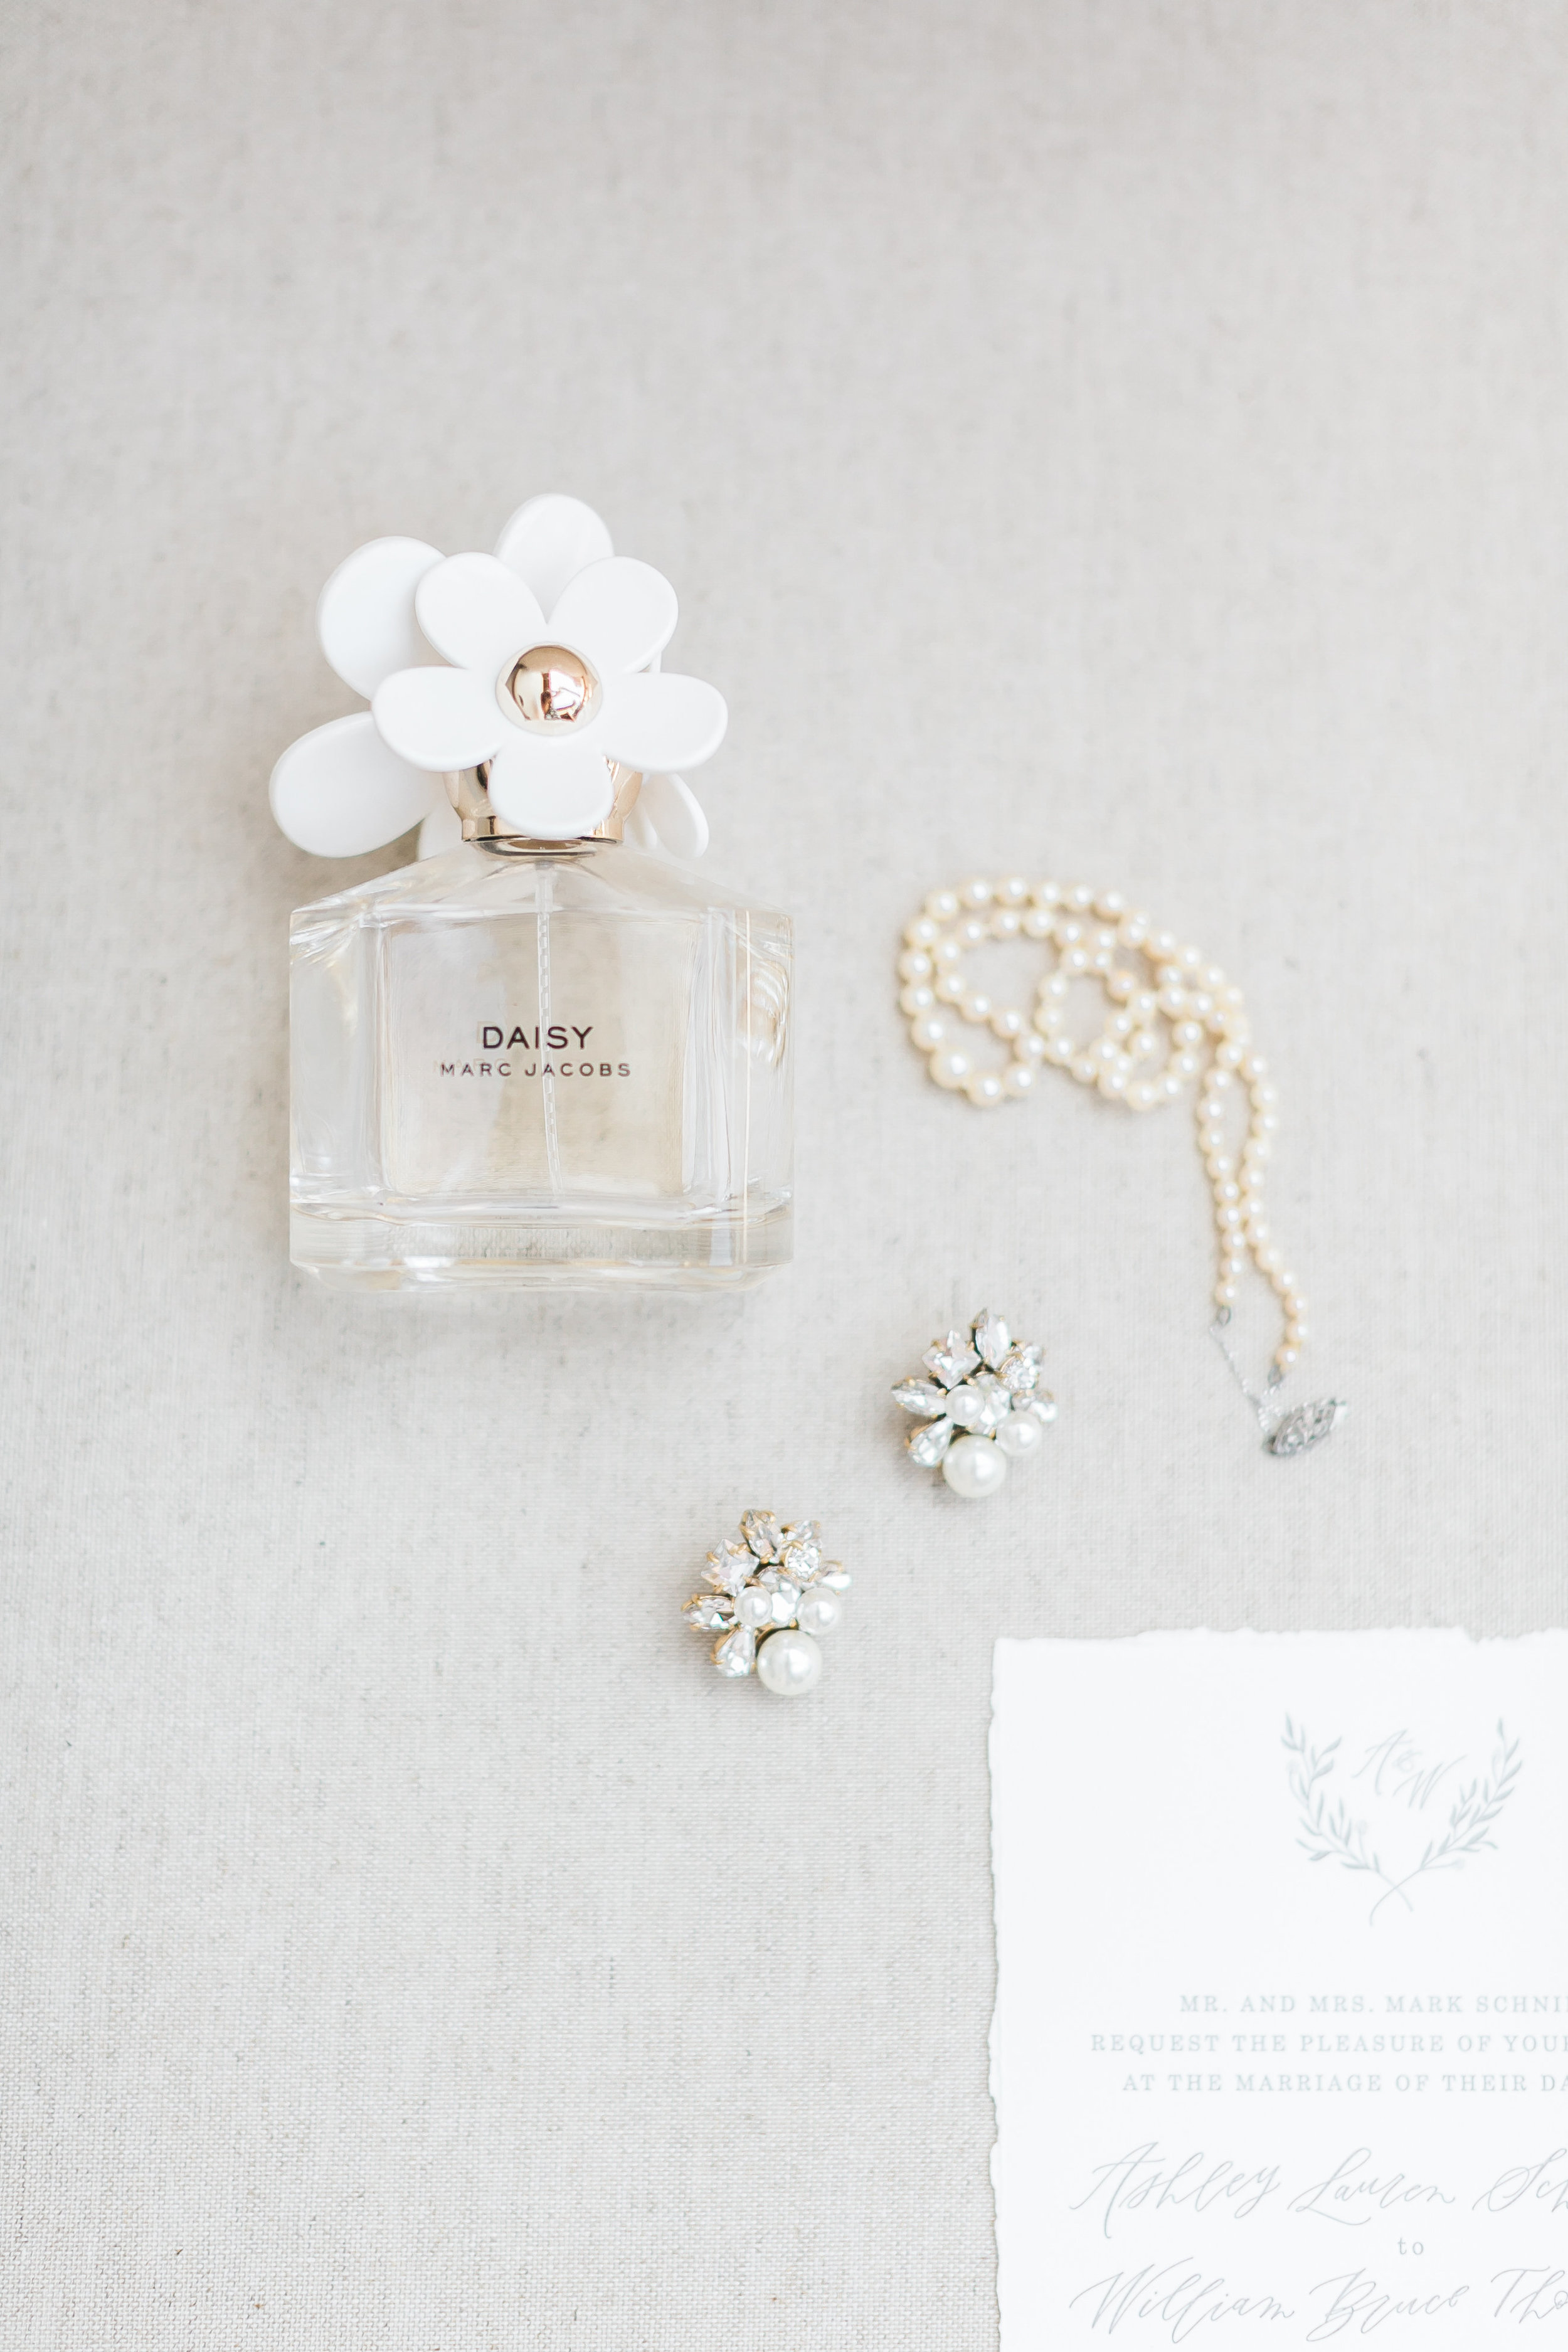 Daisy Wedding Perfume.   CREDITS:  Destination Wedding Planner  ANDREA EPPOLITO EVENTS  · Images by  J.ANNE P  HOTOGRAPHY  · Video  HOO FILMS  · Venue Ritz Carlton Bacara Santa Barbara ·Gown  MONIQUE LHULLIER ·Bridesmaids Dresses  SHOW ME YOUR MUMU ·Stationery  SHE PAPERIE ·Bride's Shoes  BADGLEY MISCHKA ·Hair and Makeup  TEAM HAIR AND MAKEUP · Floral  BLUE MAGNOLIA ·Linen  LA TAVOLA ·Decor Rentals  TENT MERCHANT ·Calligraphy  EBB ·Lighting  FIVE STAR AV ·Ice Cream Station  MCCONNELL'S ICE CREAM